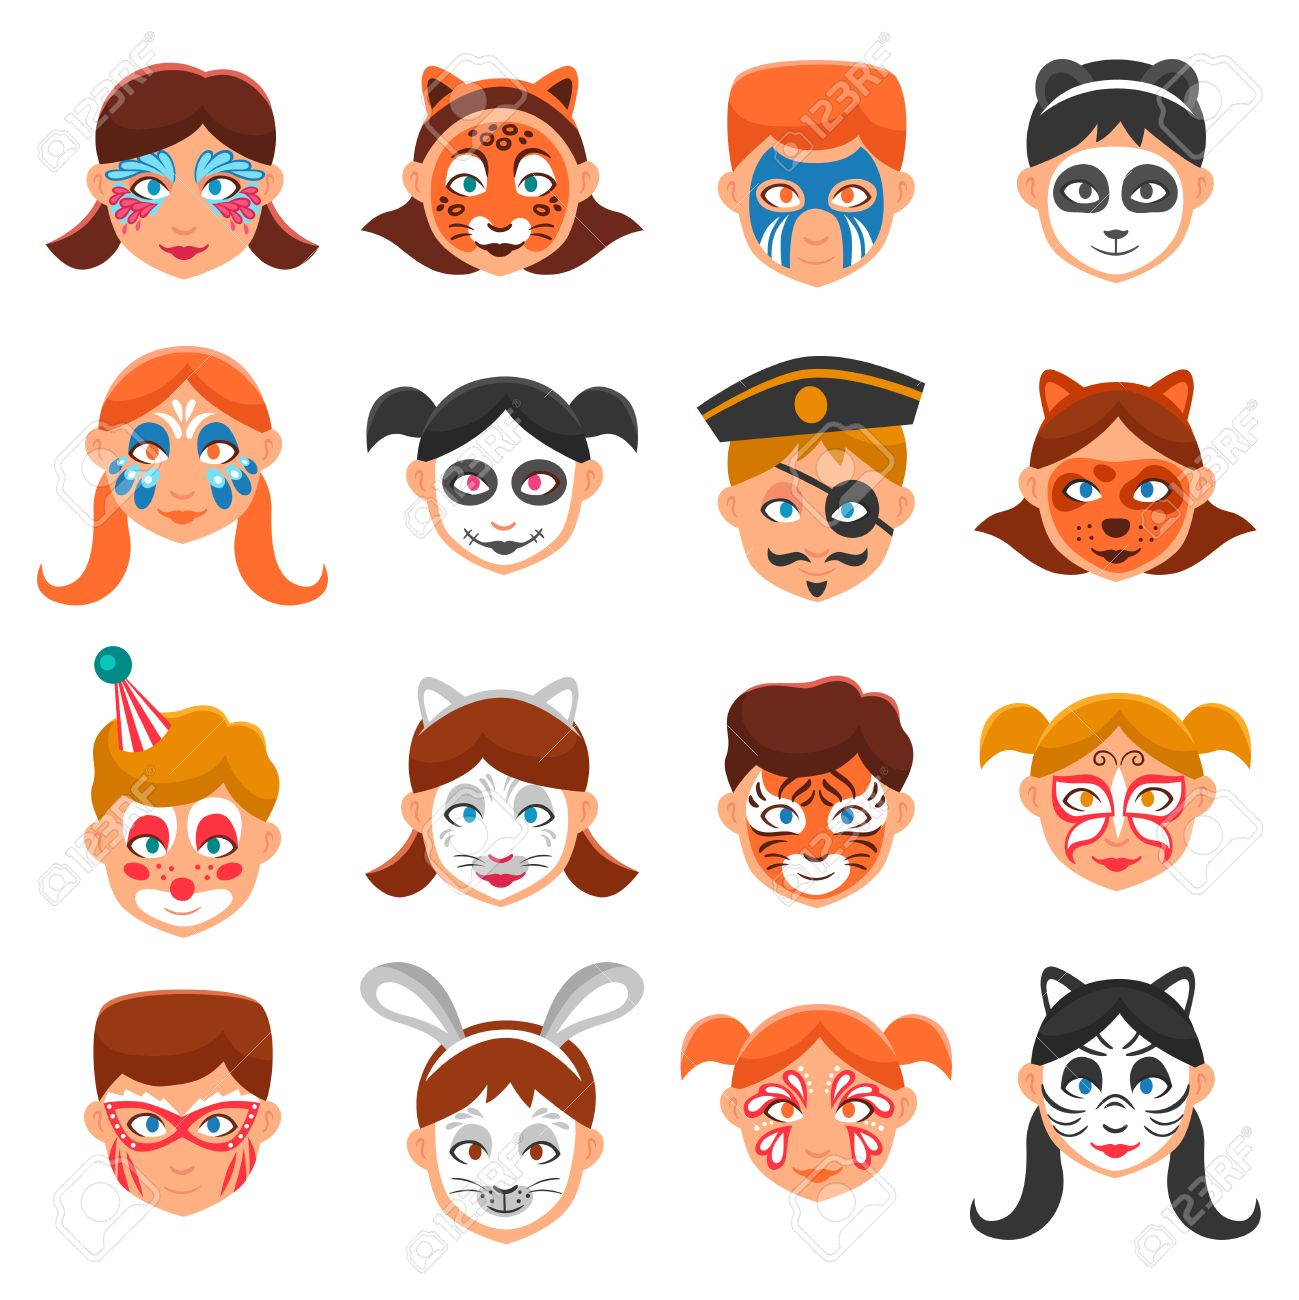 Painted faces clipart - Clipground